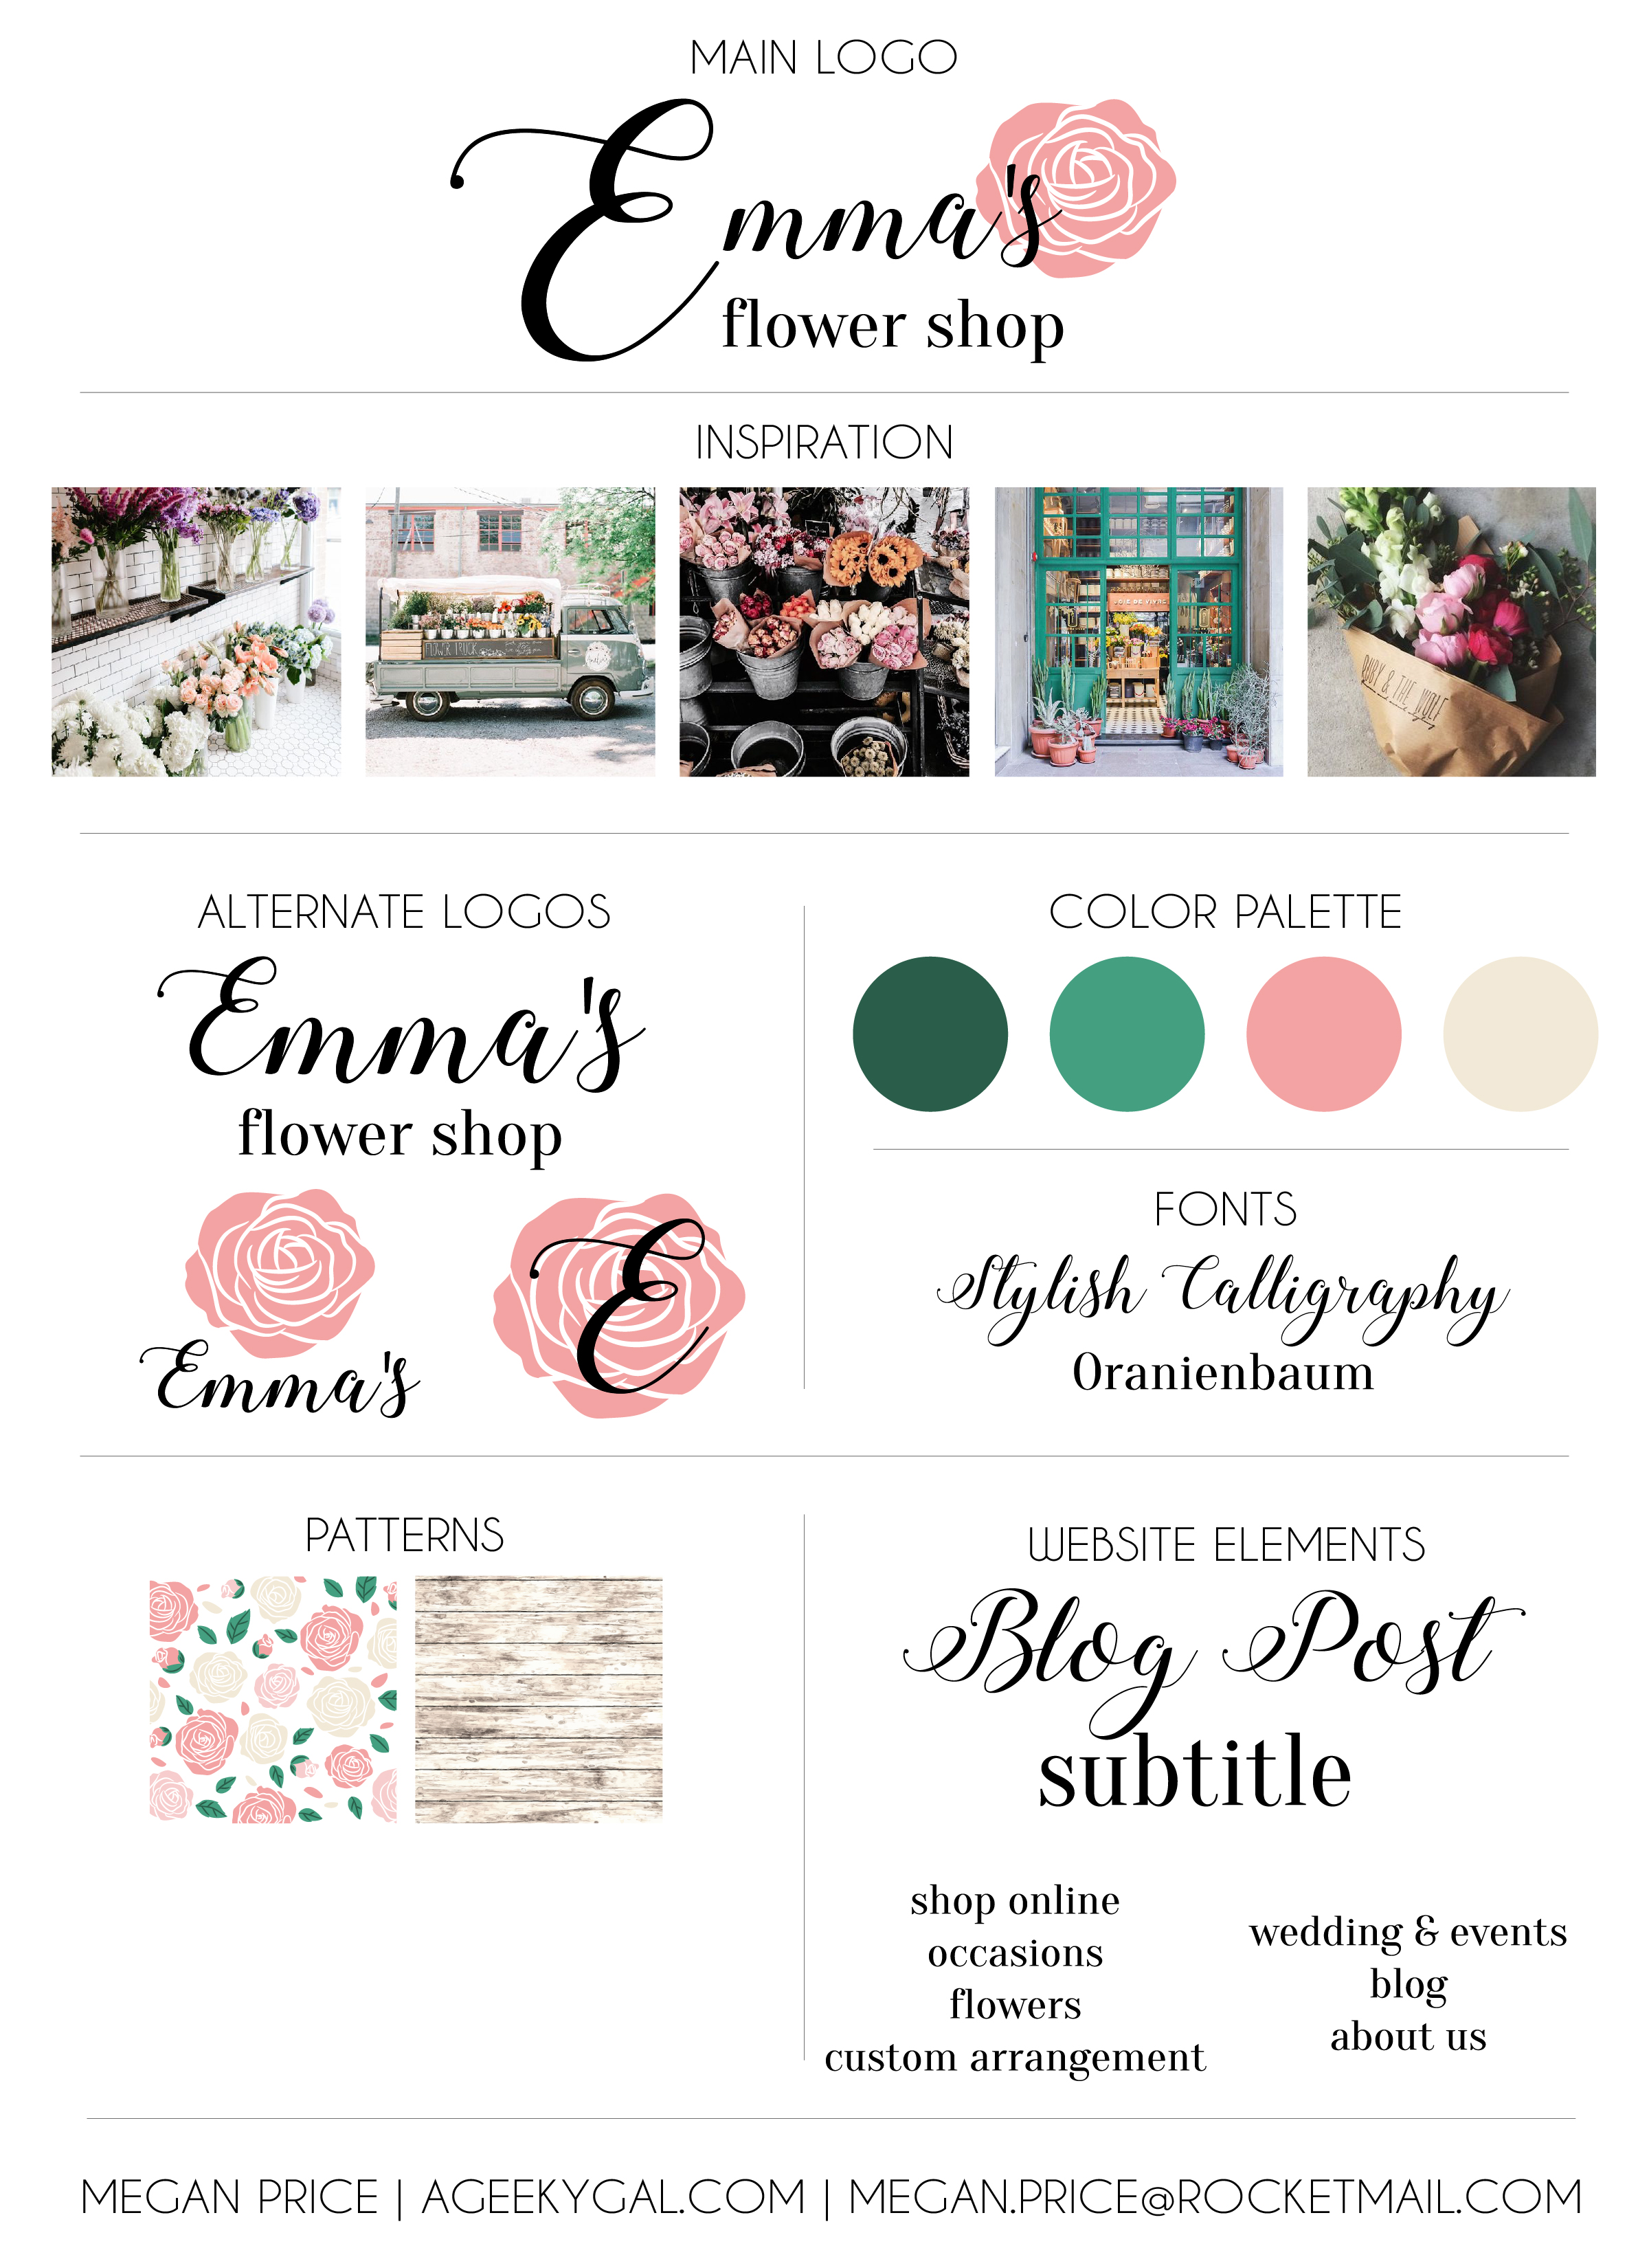 EmmaFlowerShop_Official Board.jpg